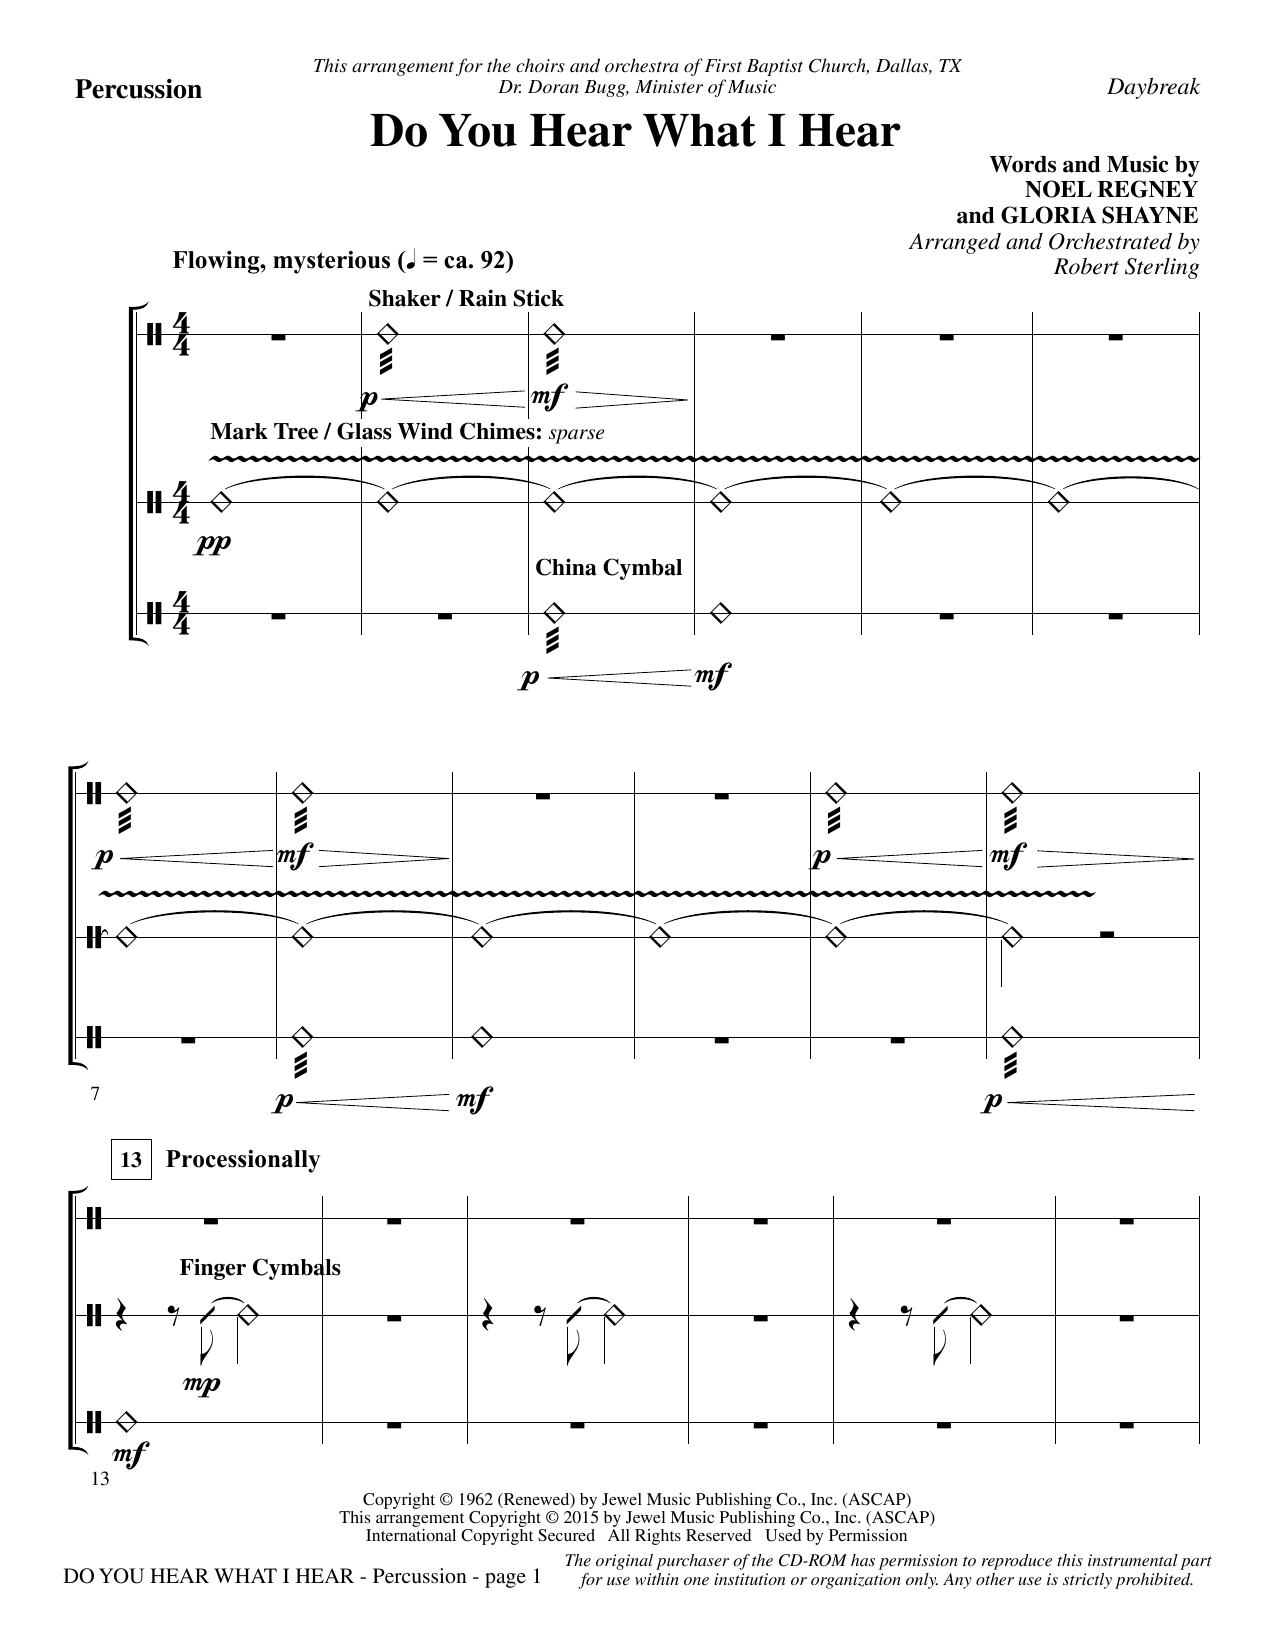 Do You Hear What I Hear - Percussion Sheet Music